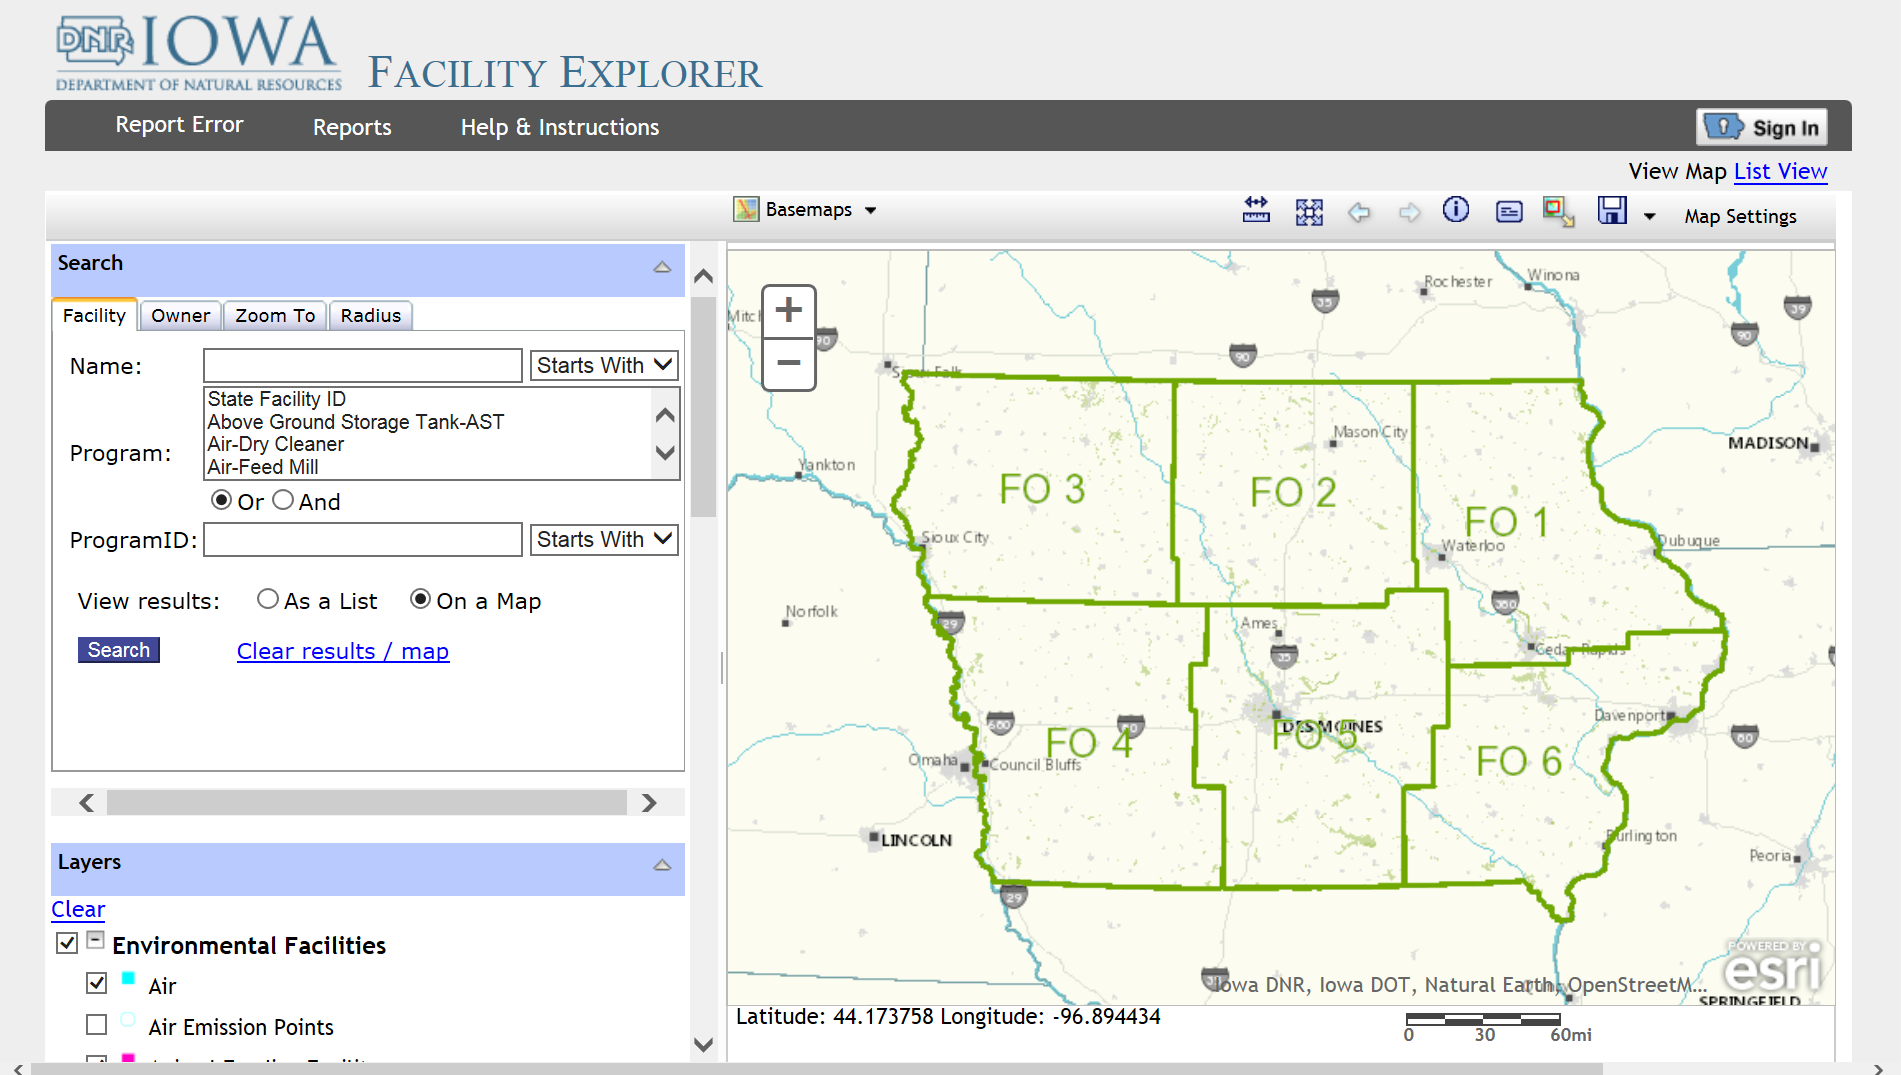 Link for Iowa DNR Facility Explorer and image